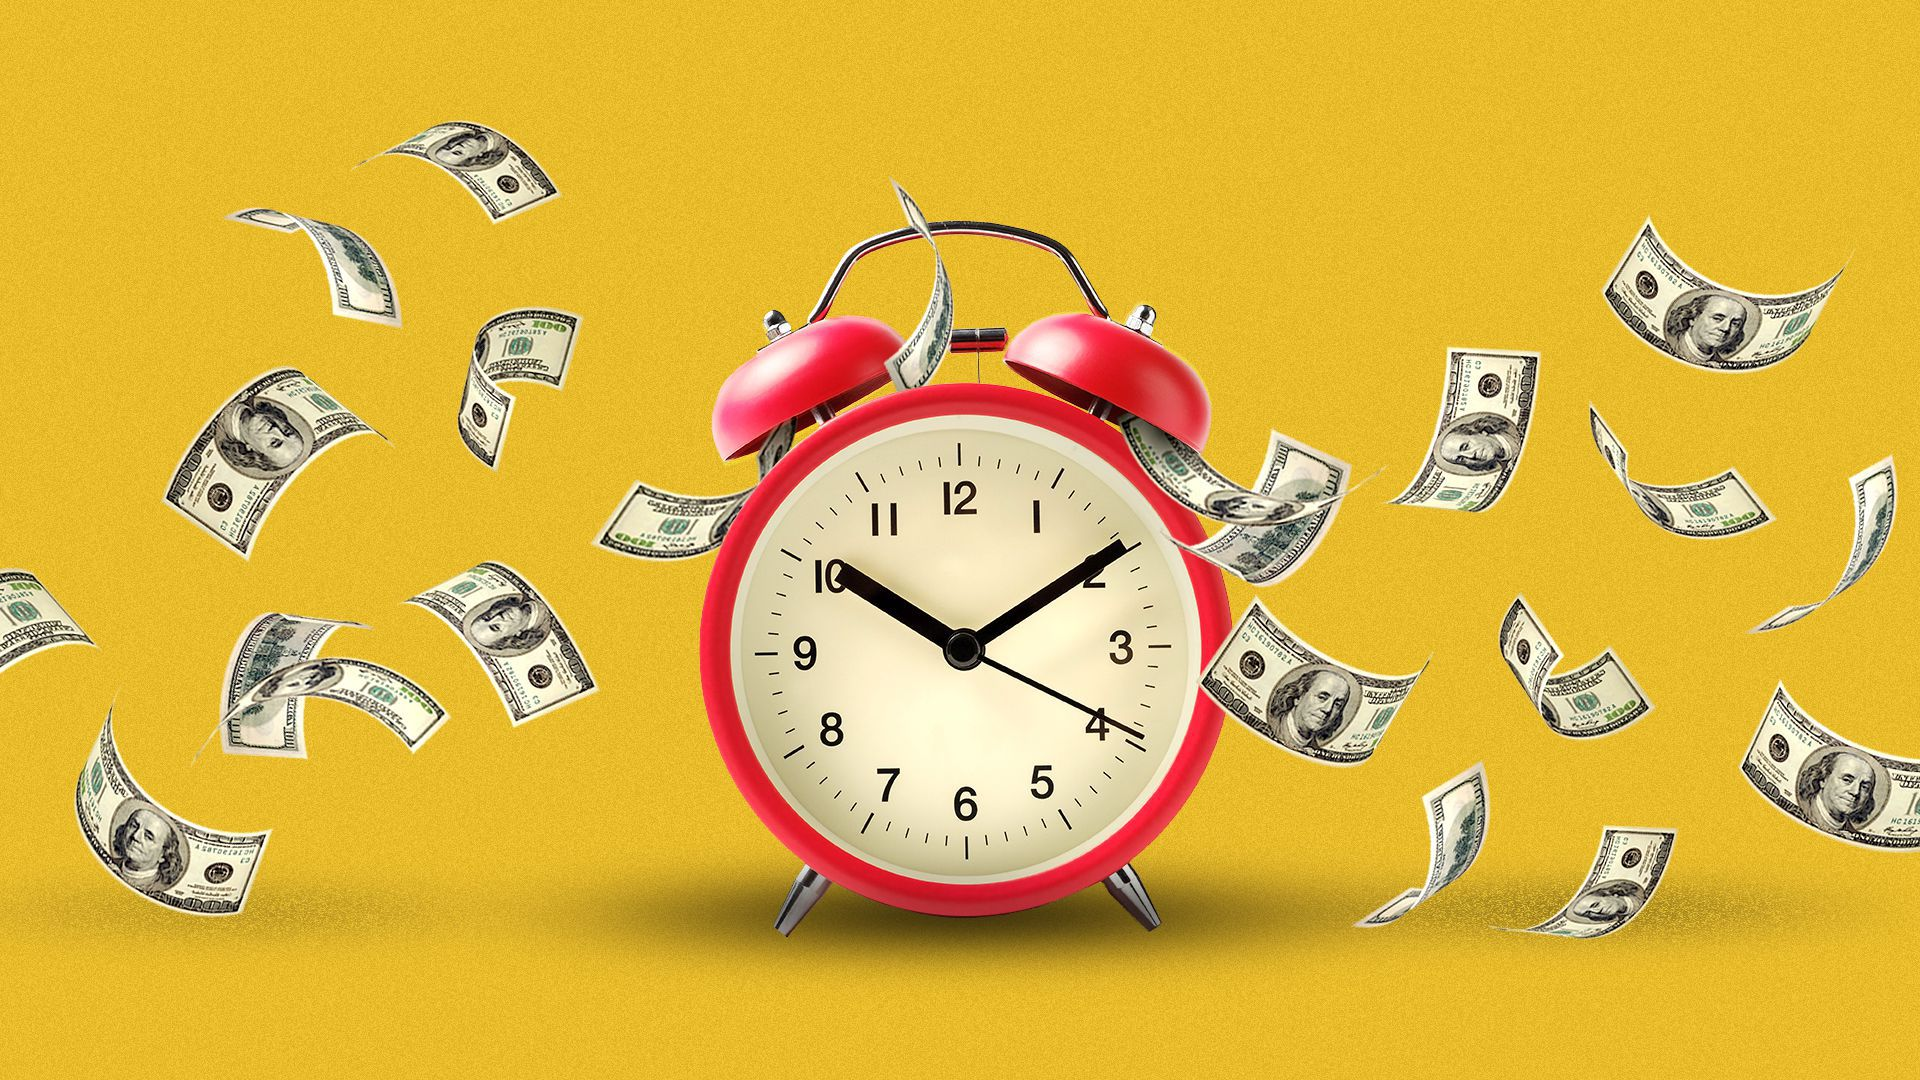 Illustration of an alarm clock with money spilling out as it is ringing.